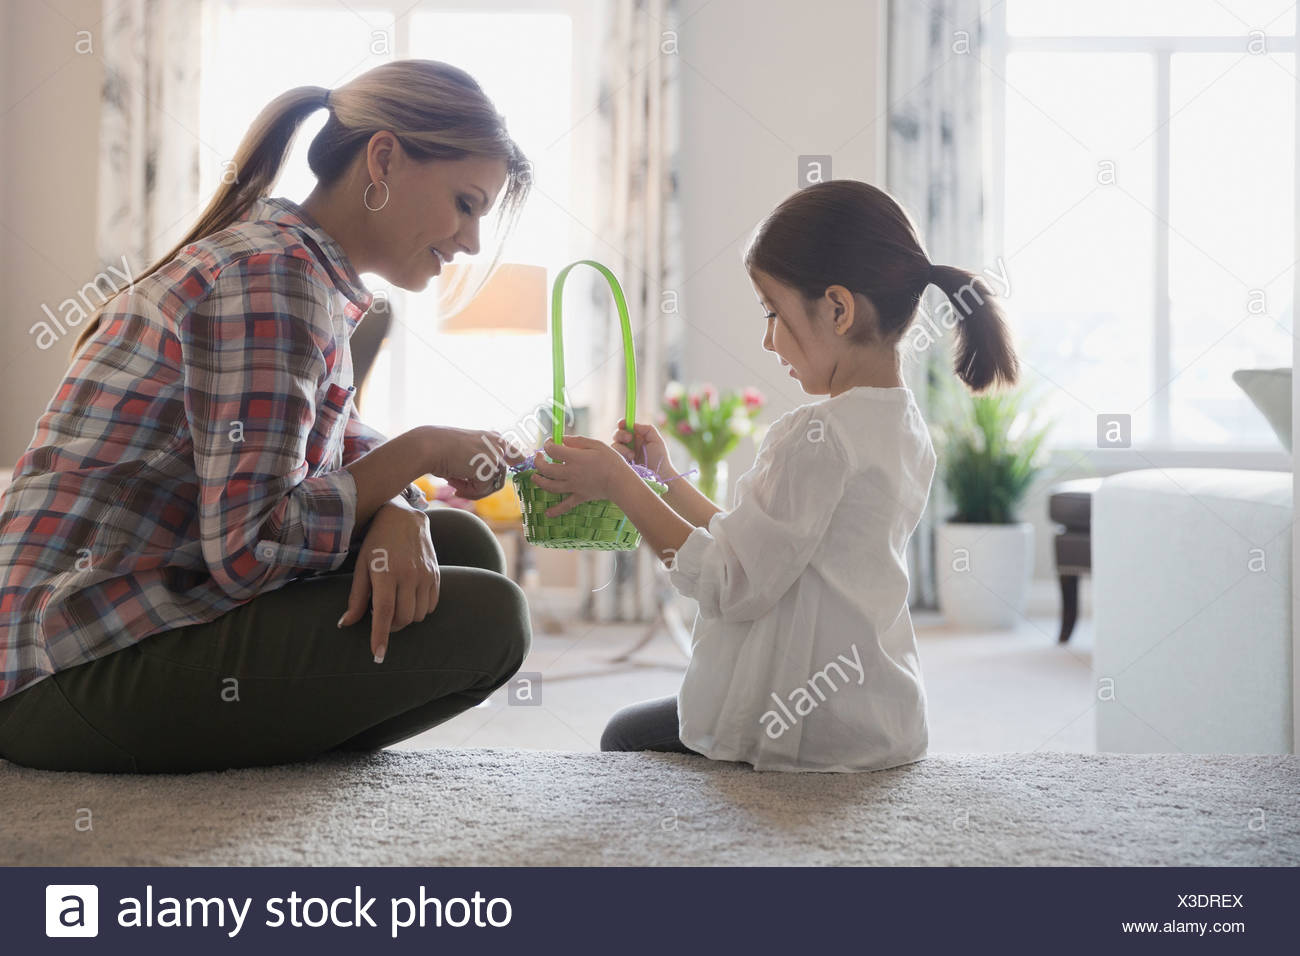 Mother and daughter counting Easter eggs at home - Stock Image